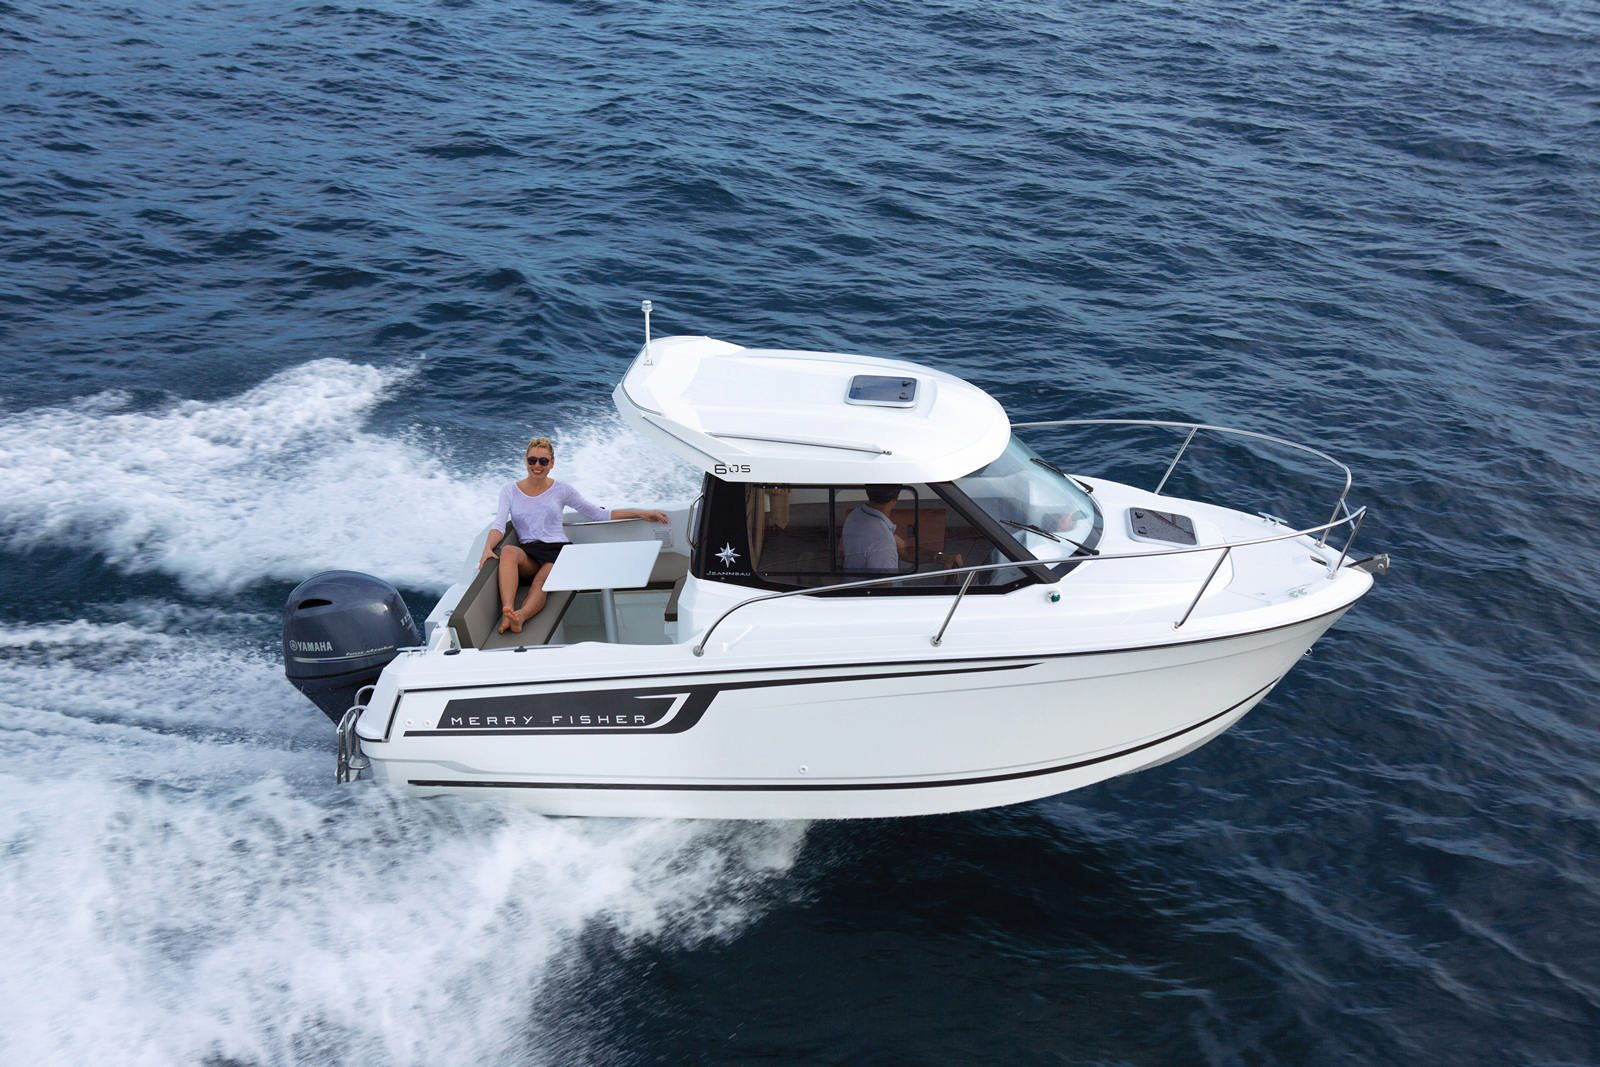 סירה מנוע JEANNEAU MERRY FISHER 605 - סירה מנוע JEANNEAU MERRY FISHER 605 - סטרים יאכטות